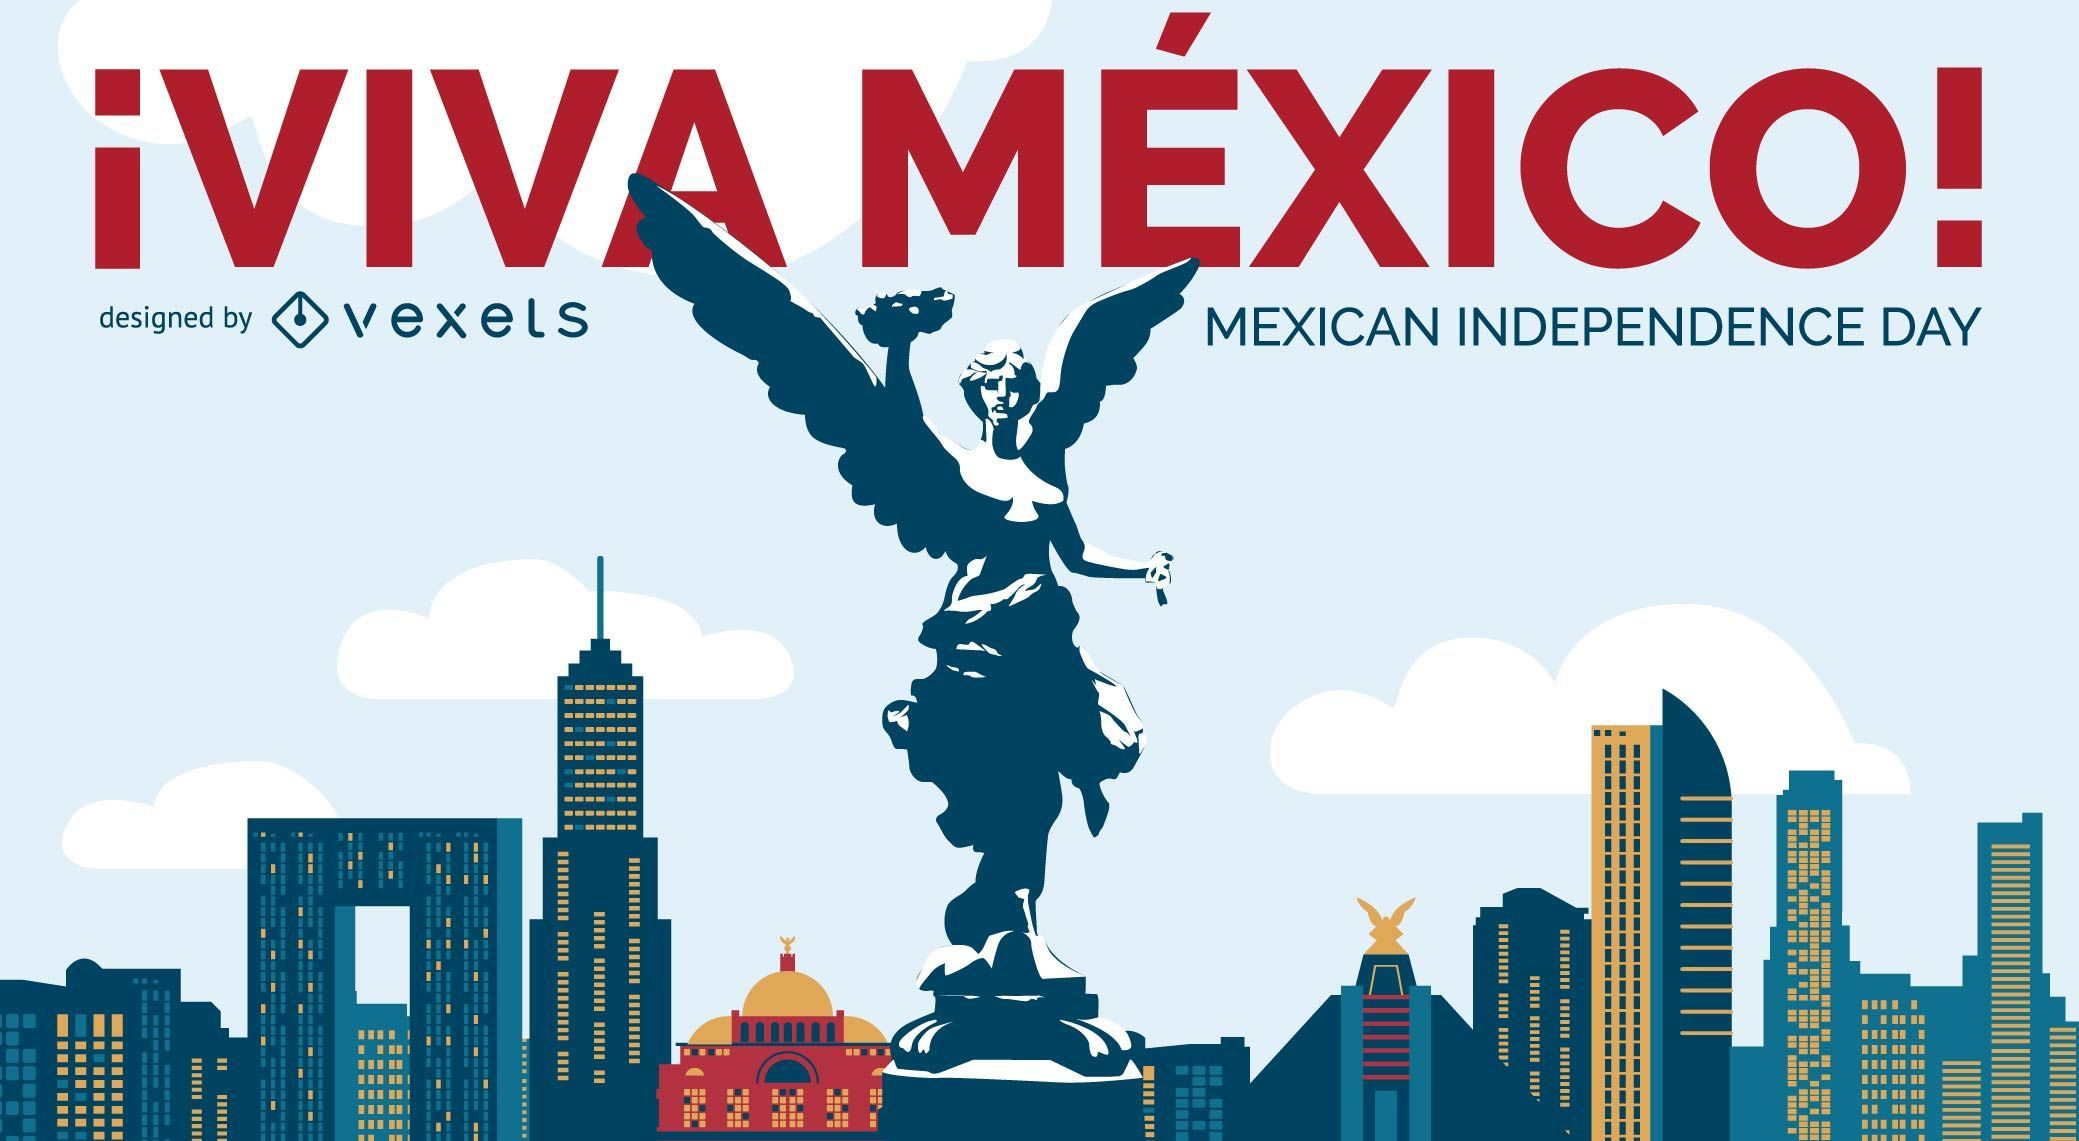 Viva Mexico Independence Day design